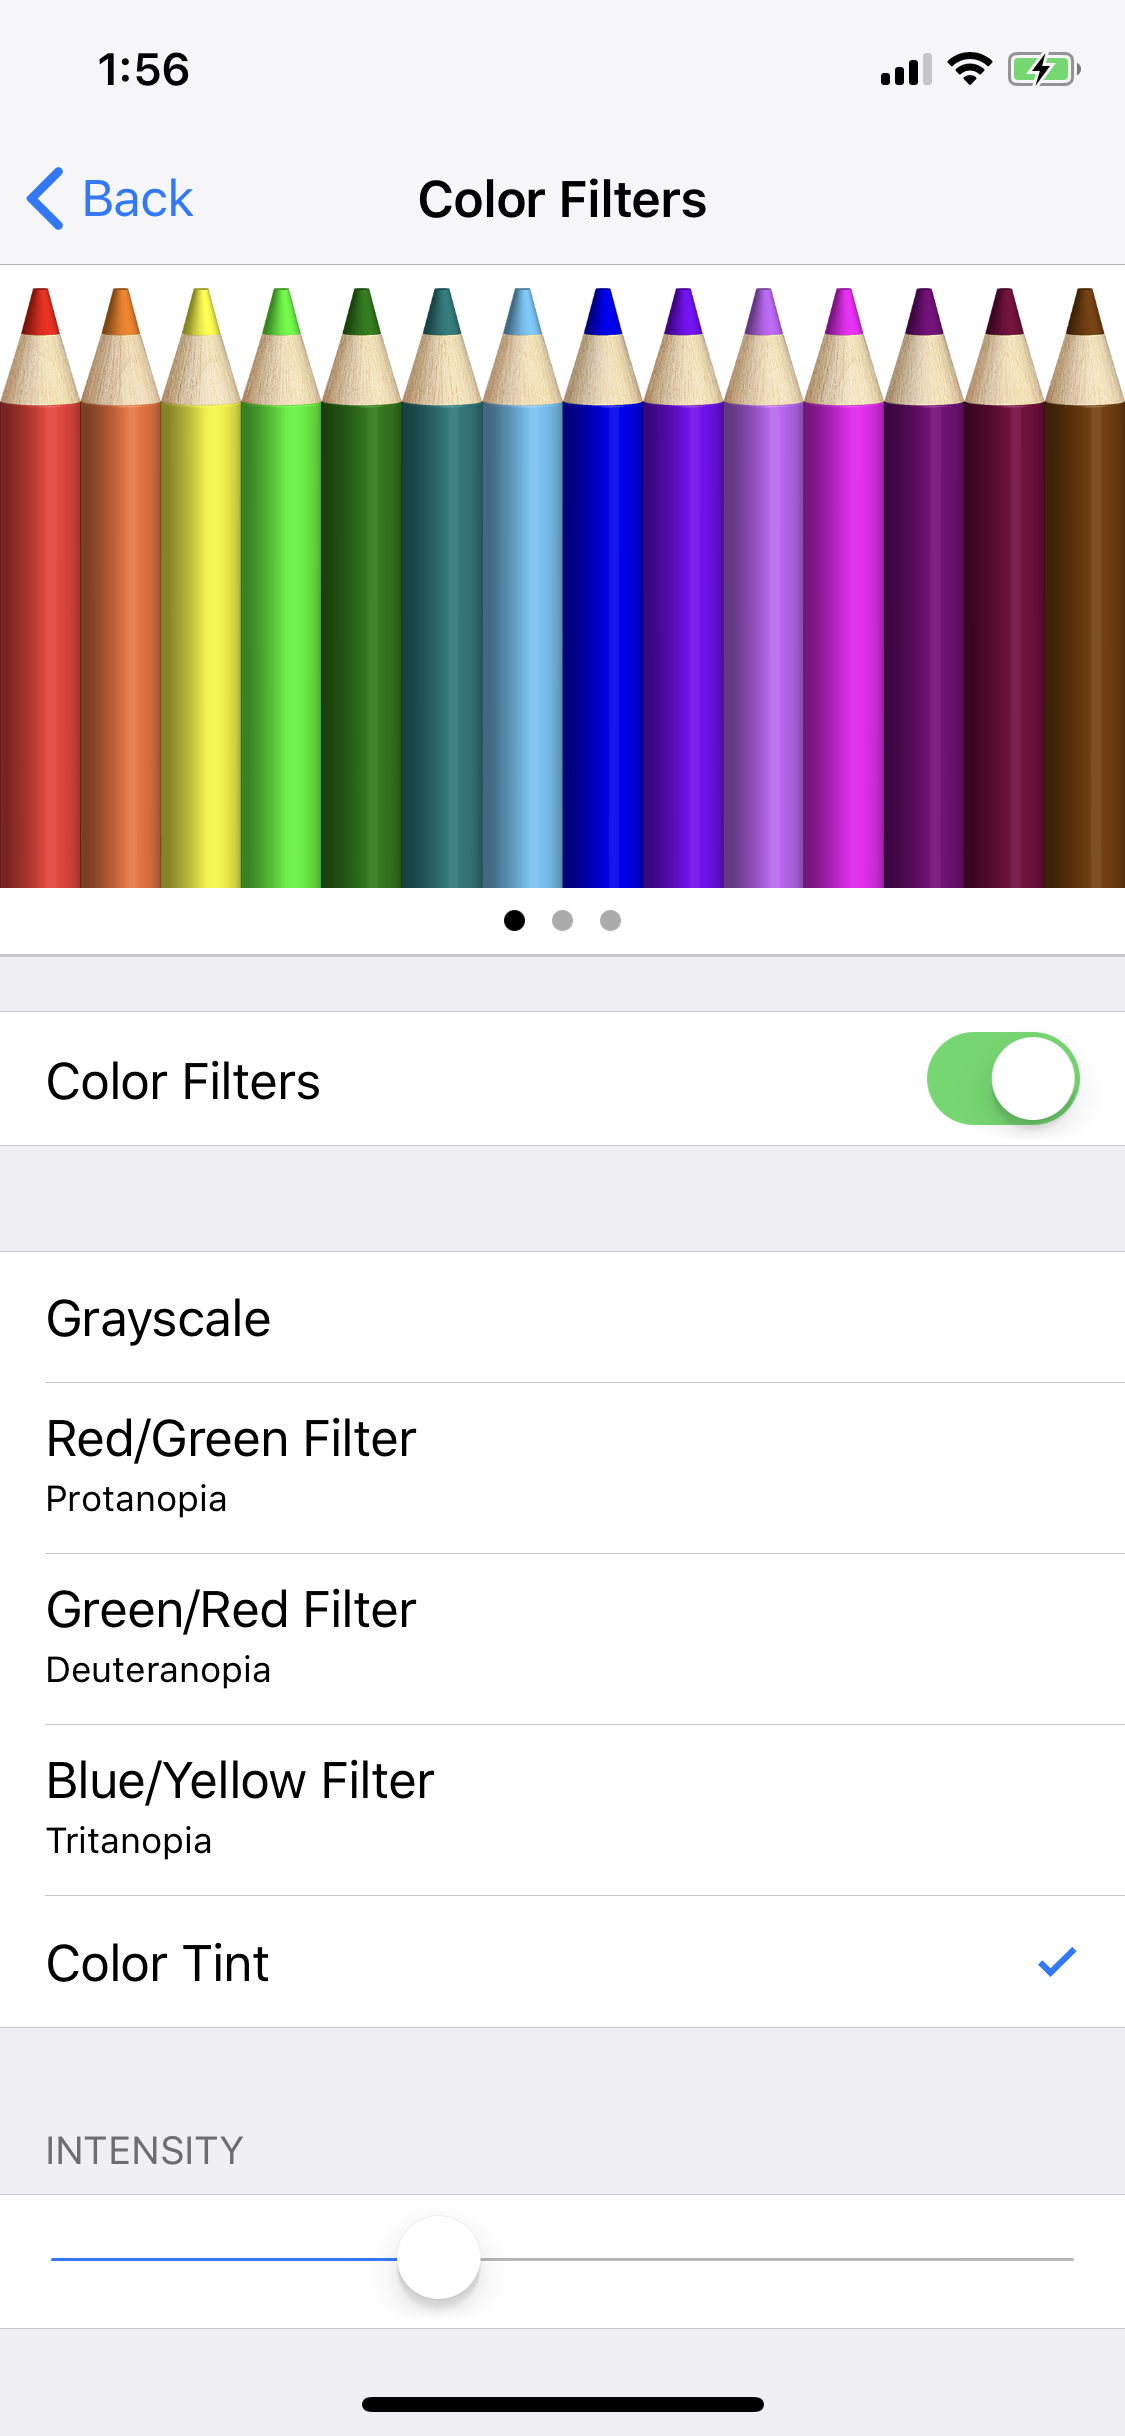 How to Set Color Filters for Your iPhone X?